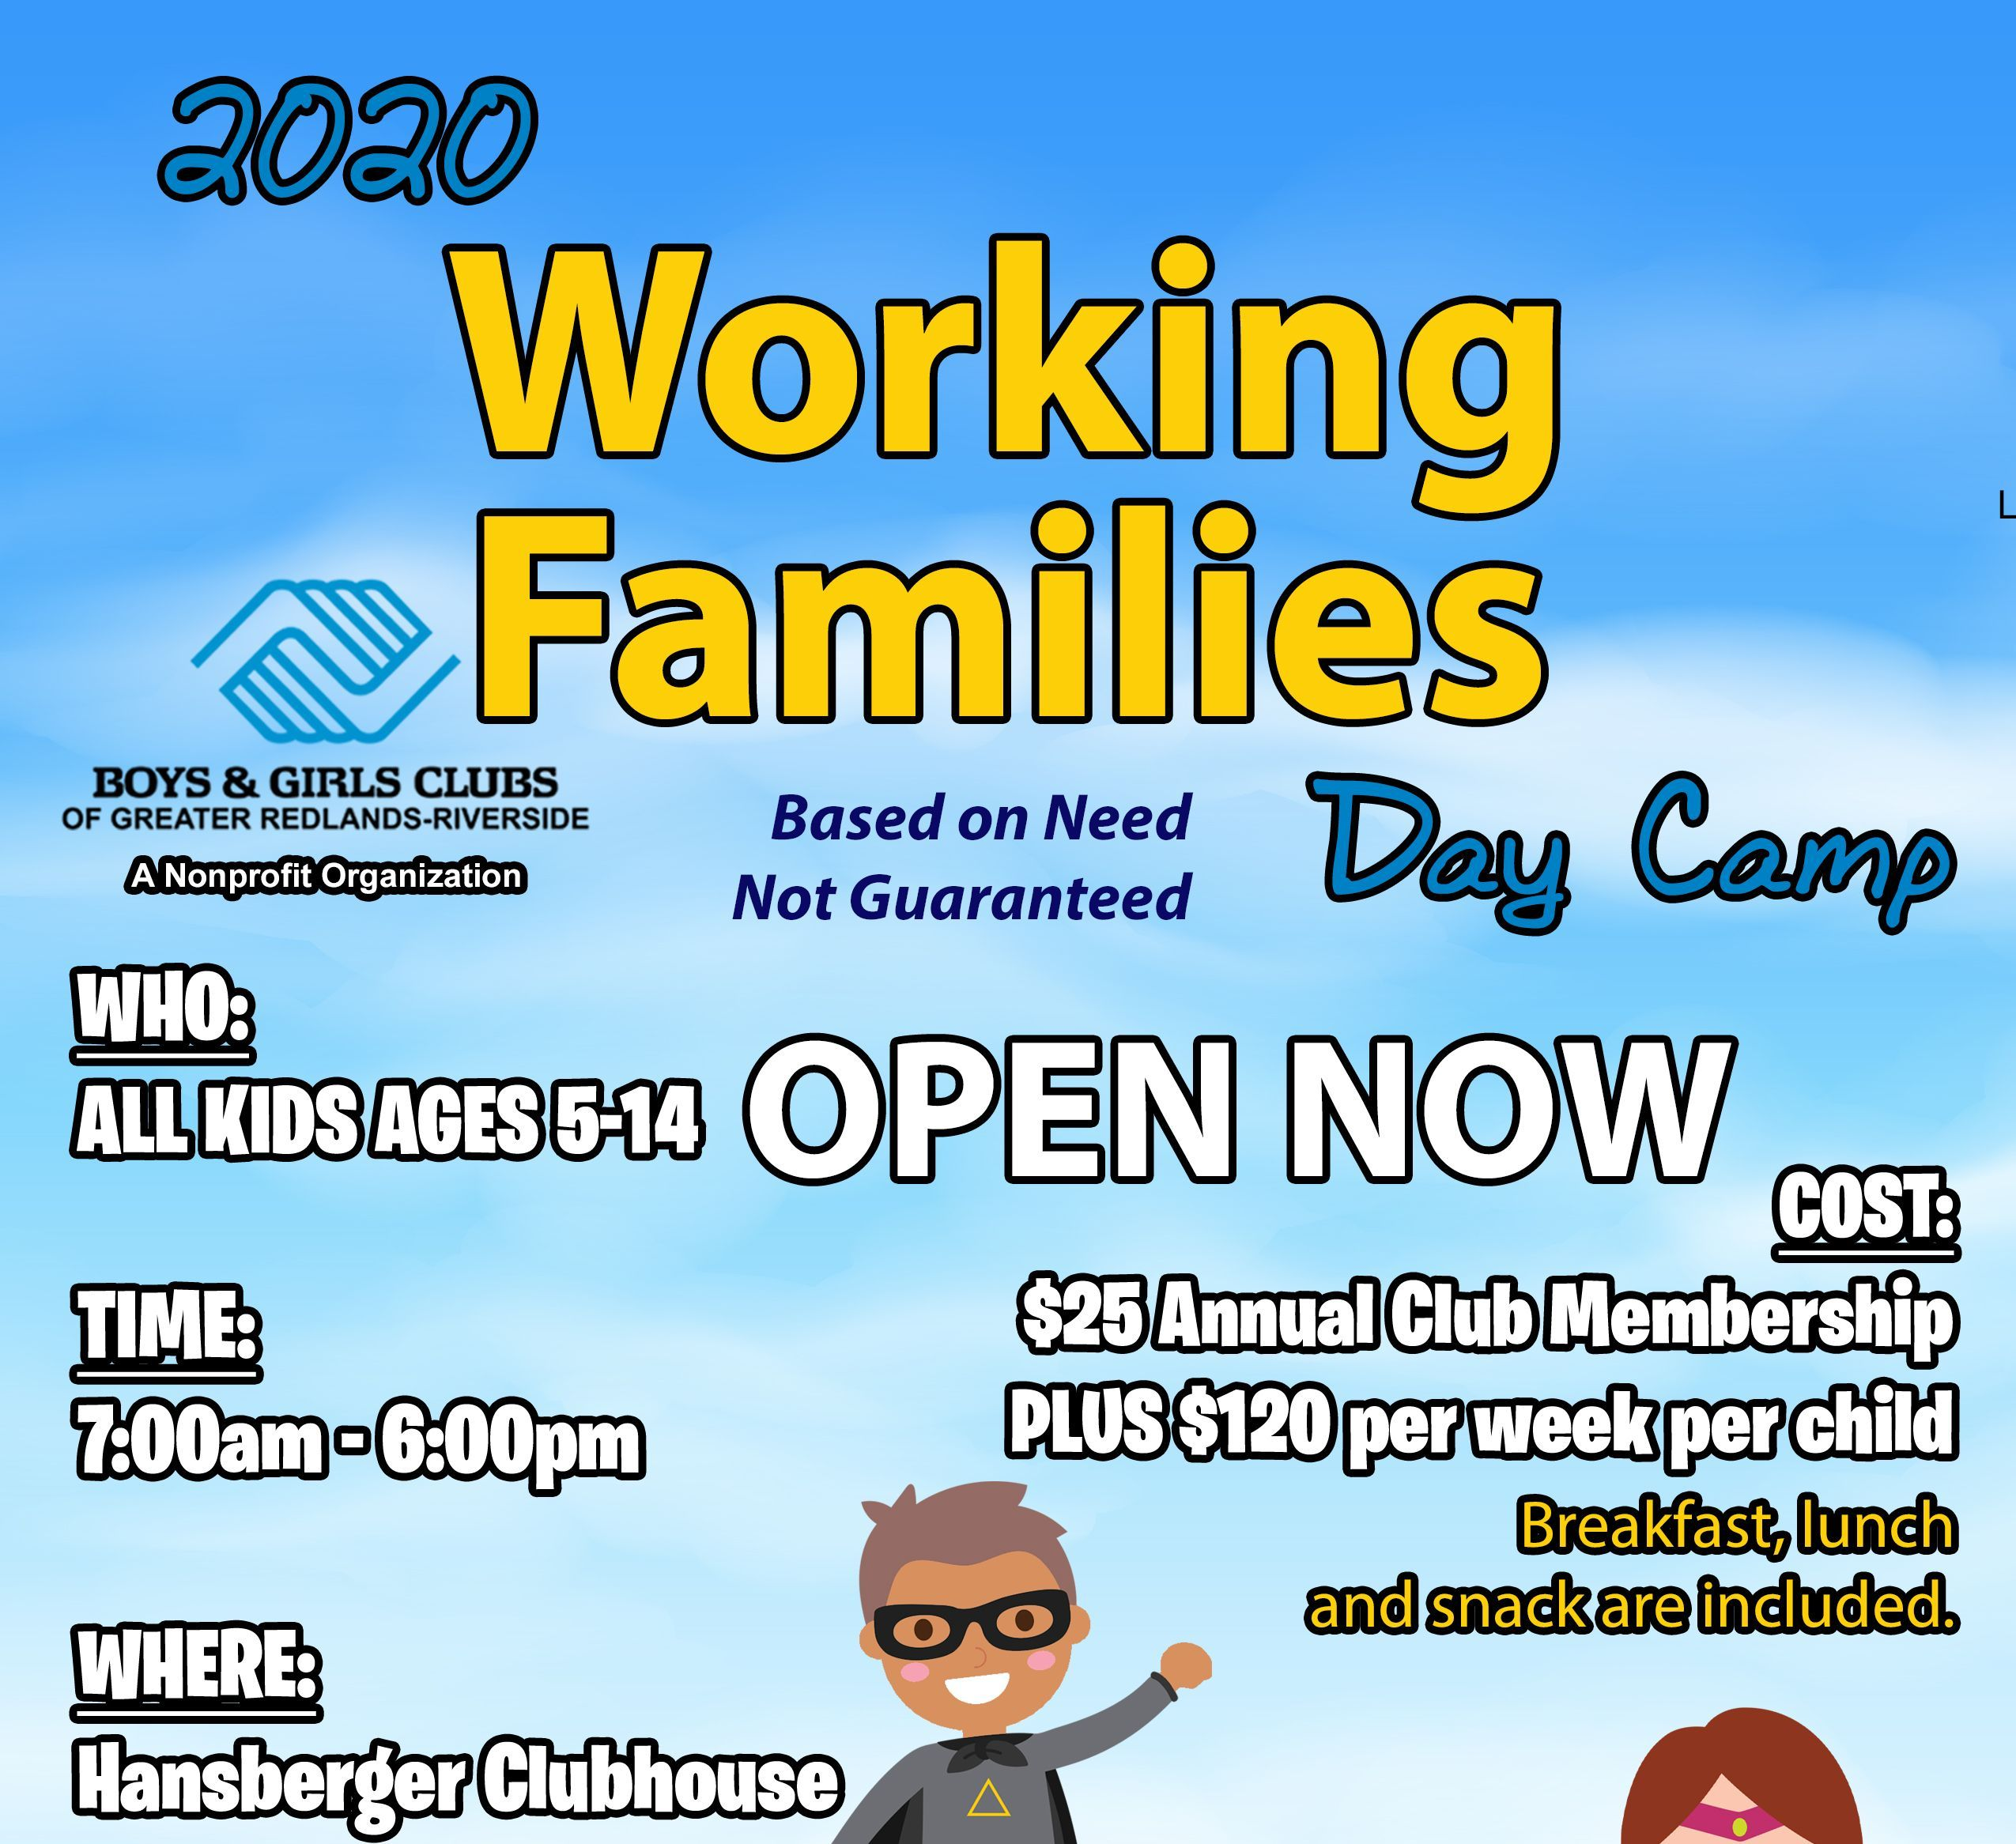 Serving Kids of Working Families